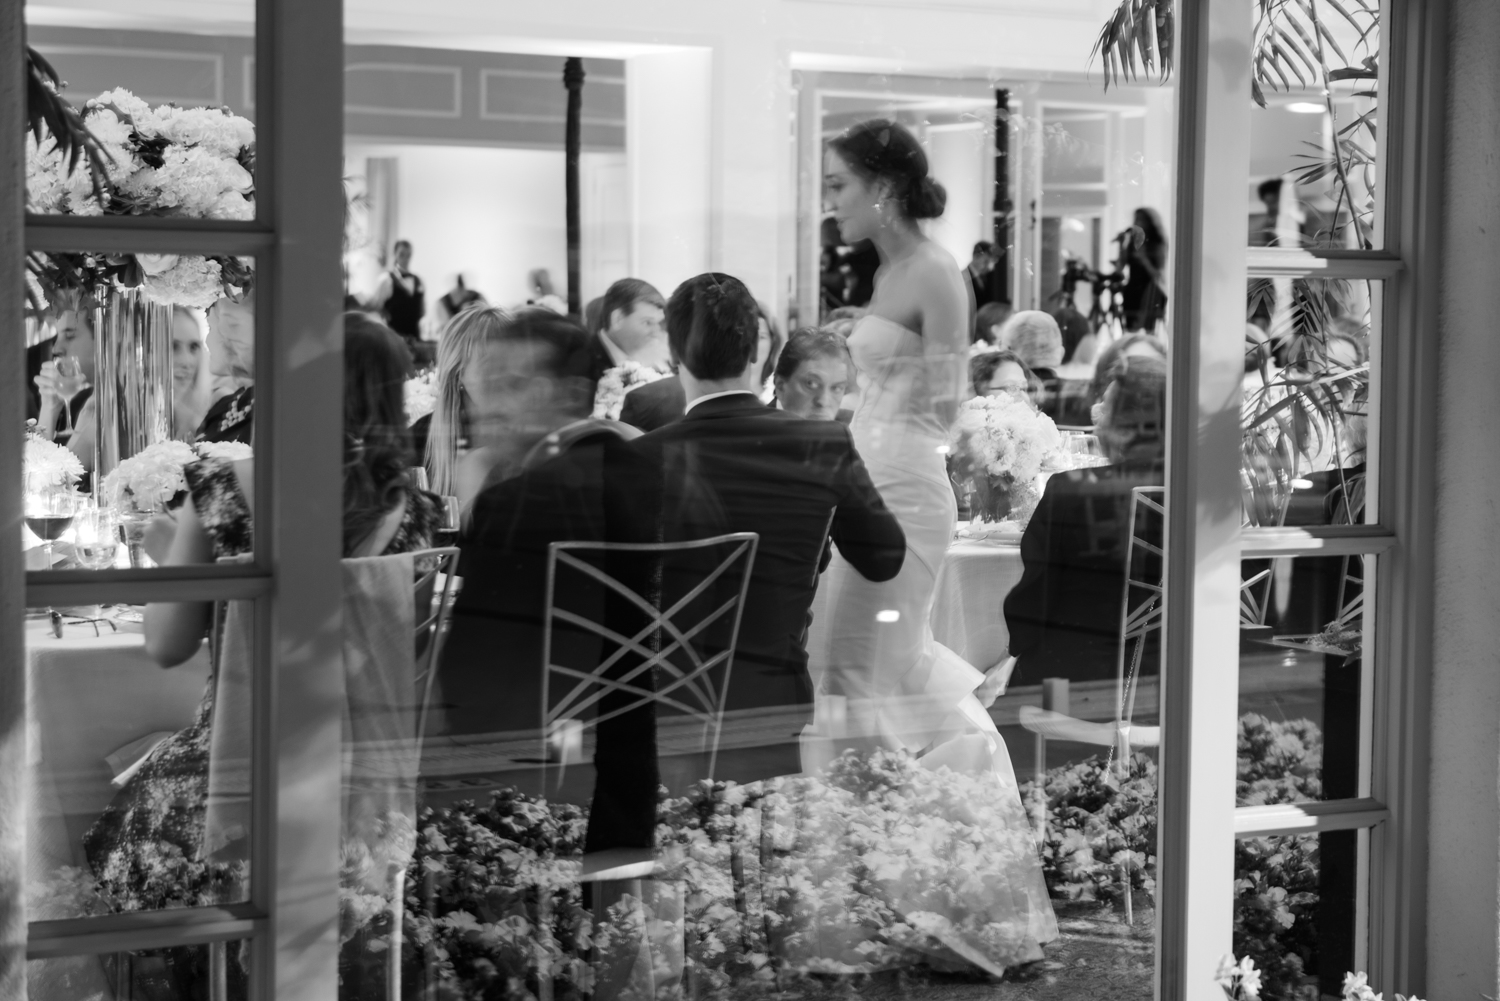 An artsy look in through the reception hall windows as Caroline meets the guests at her wedding; photo by Sylvie Gil